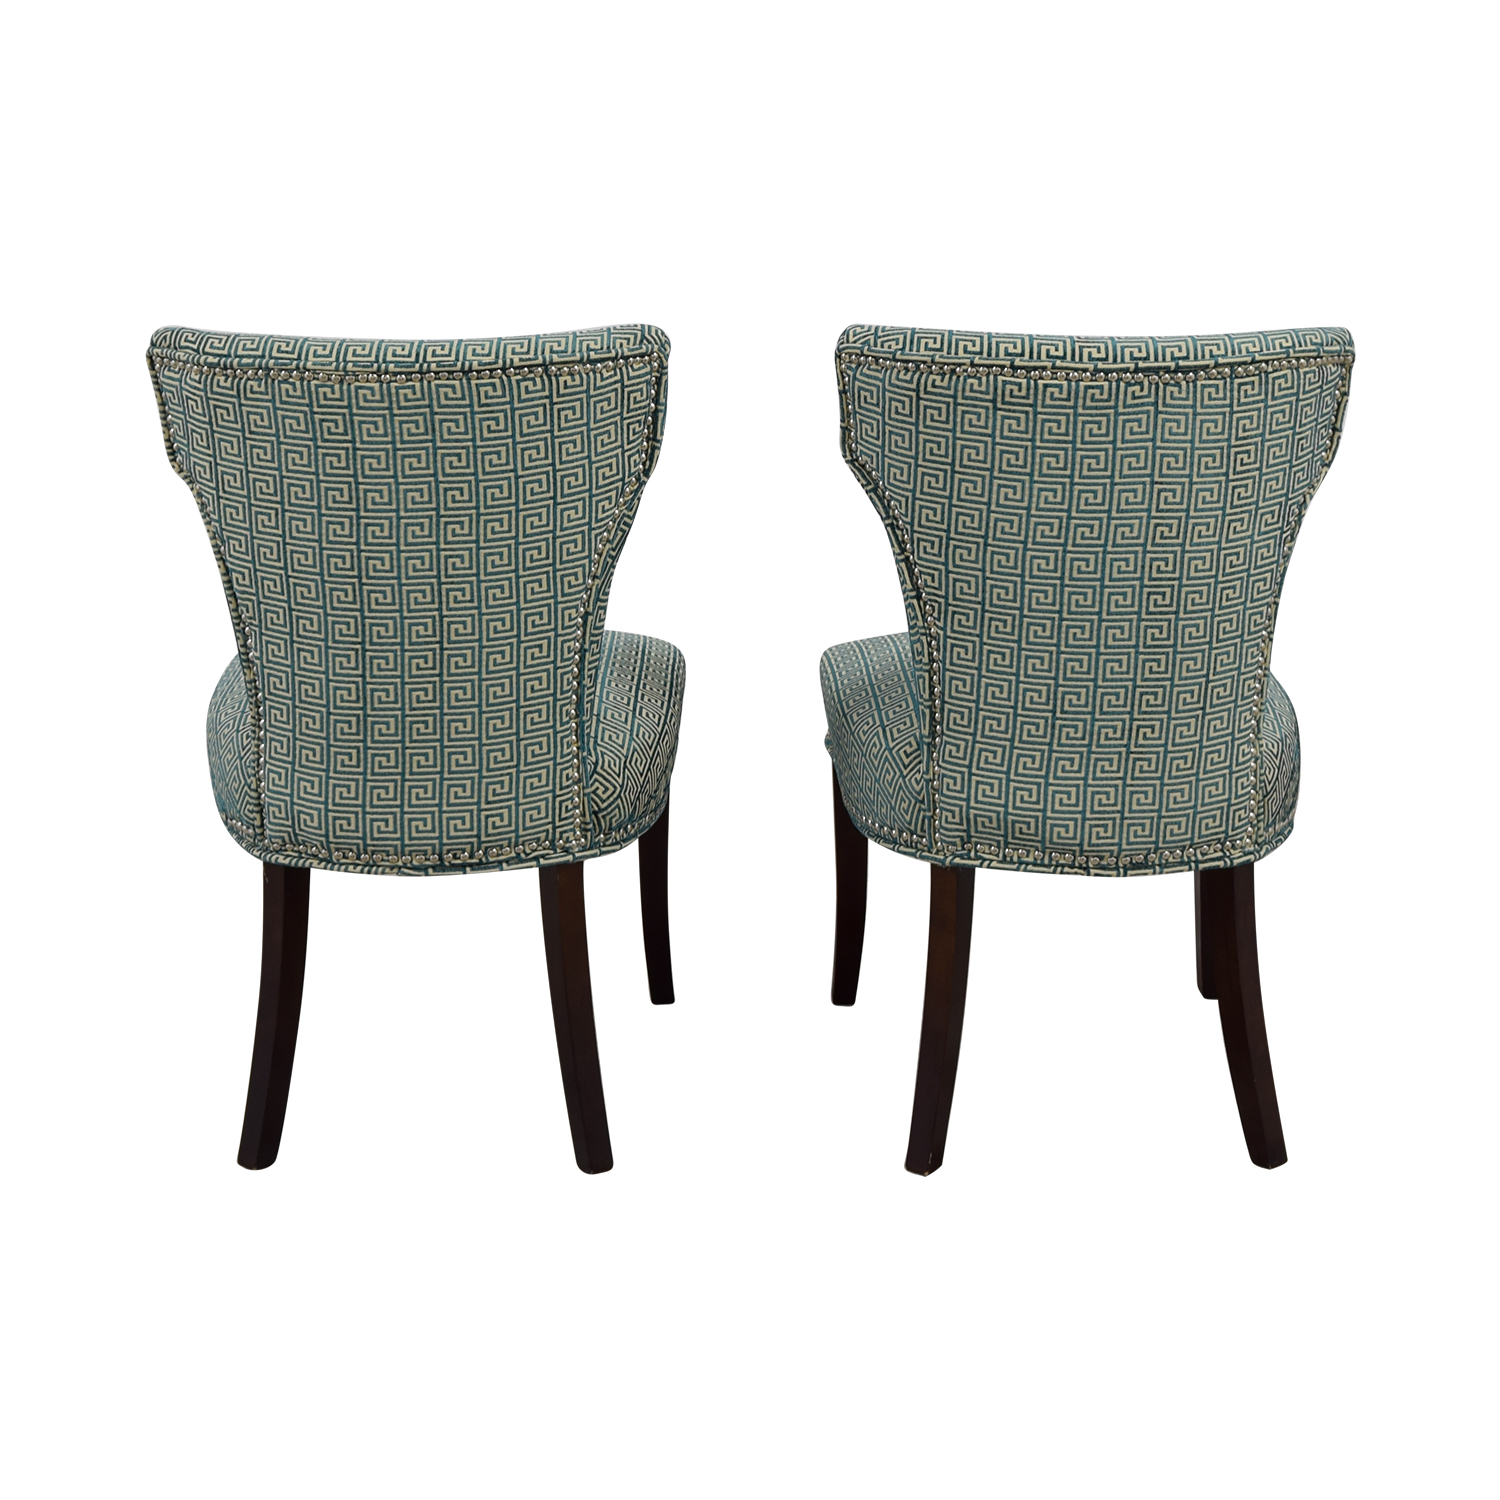 87 OFF  Cynthia Rowley Accent Chairs  Chairs